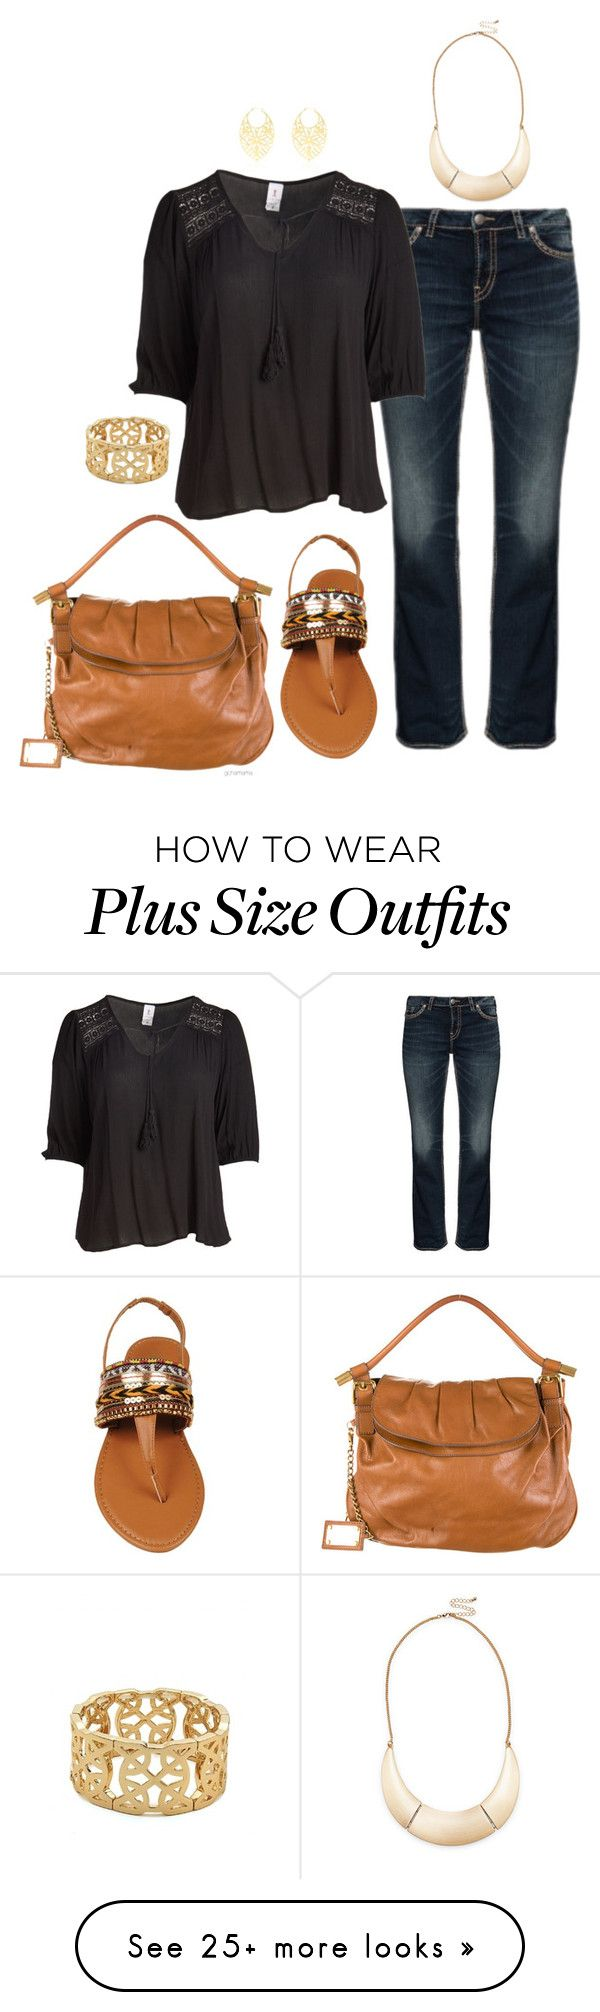 """""""Tribal feel- plus size"""" by gchamama on Polyvore featuring Silver Jeans Co., Libian, Dolce&Gabbana, Vélizance and Sole Society"""